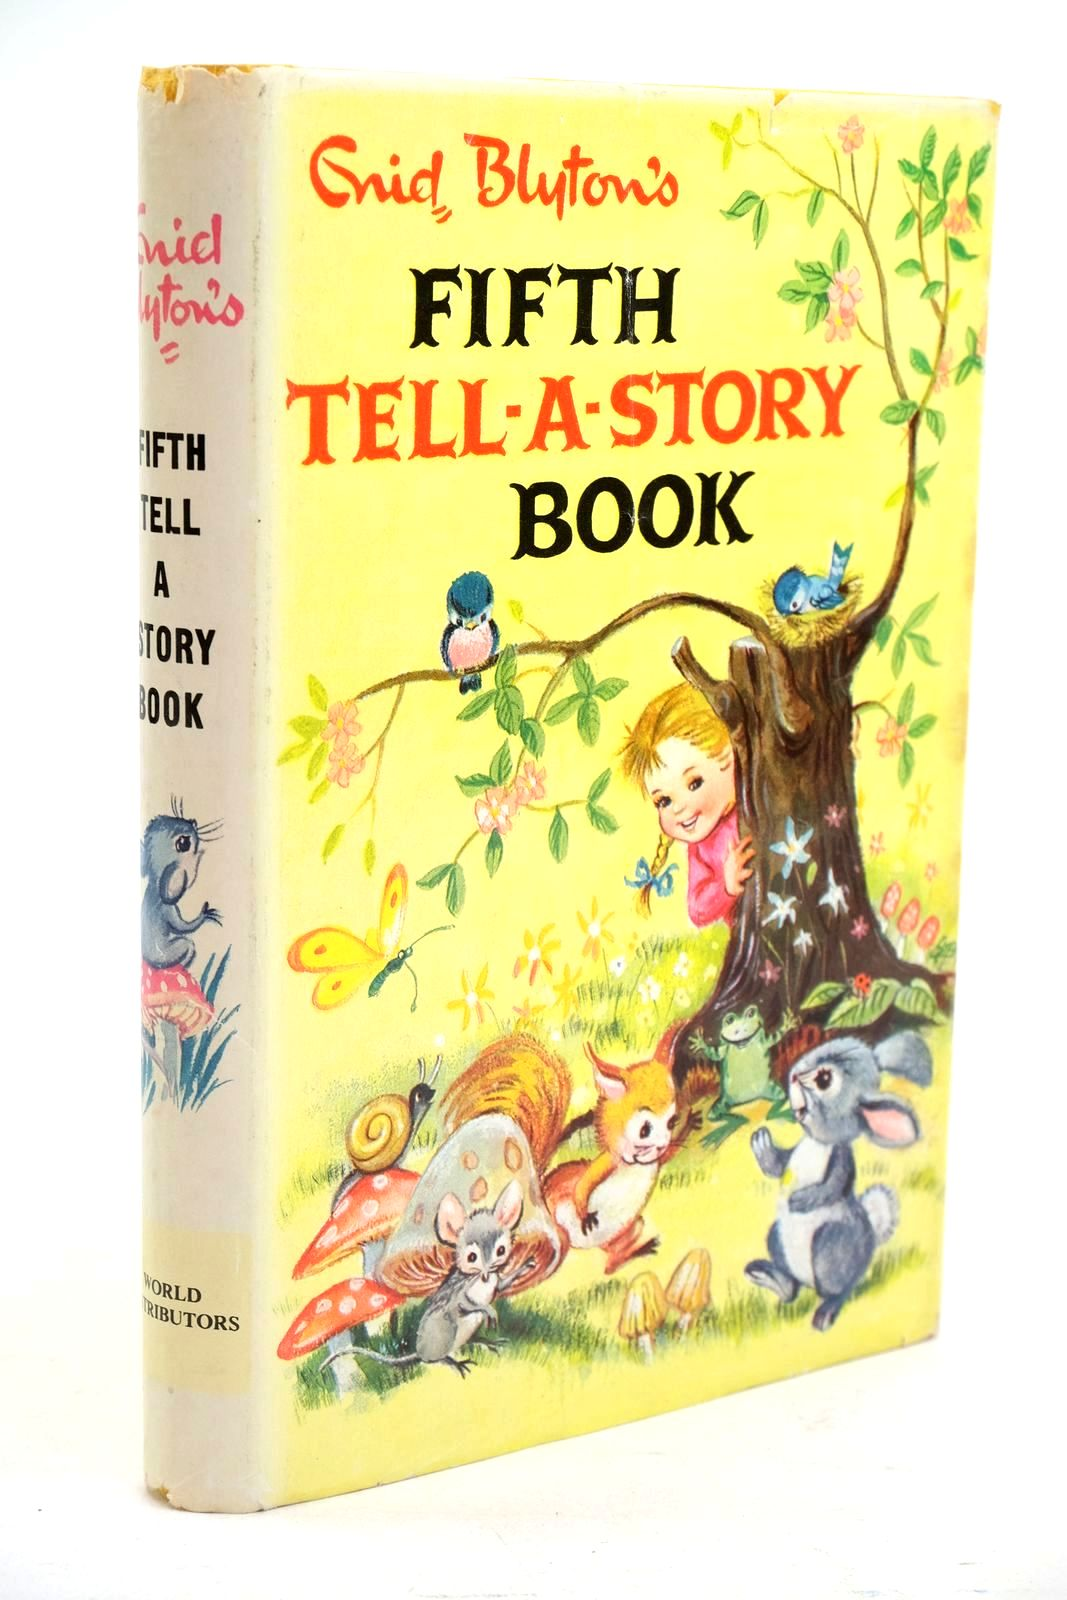 Photo of ENID BLYTON'S FIFTH TELL-A-STORY BOOK written by Blyton, Enid published by World Distributors Ltd. (STOCK CODE: 1321087)  for sale by Stella & Rose's Books